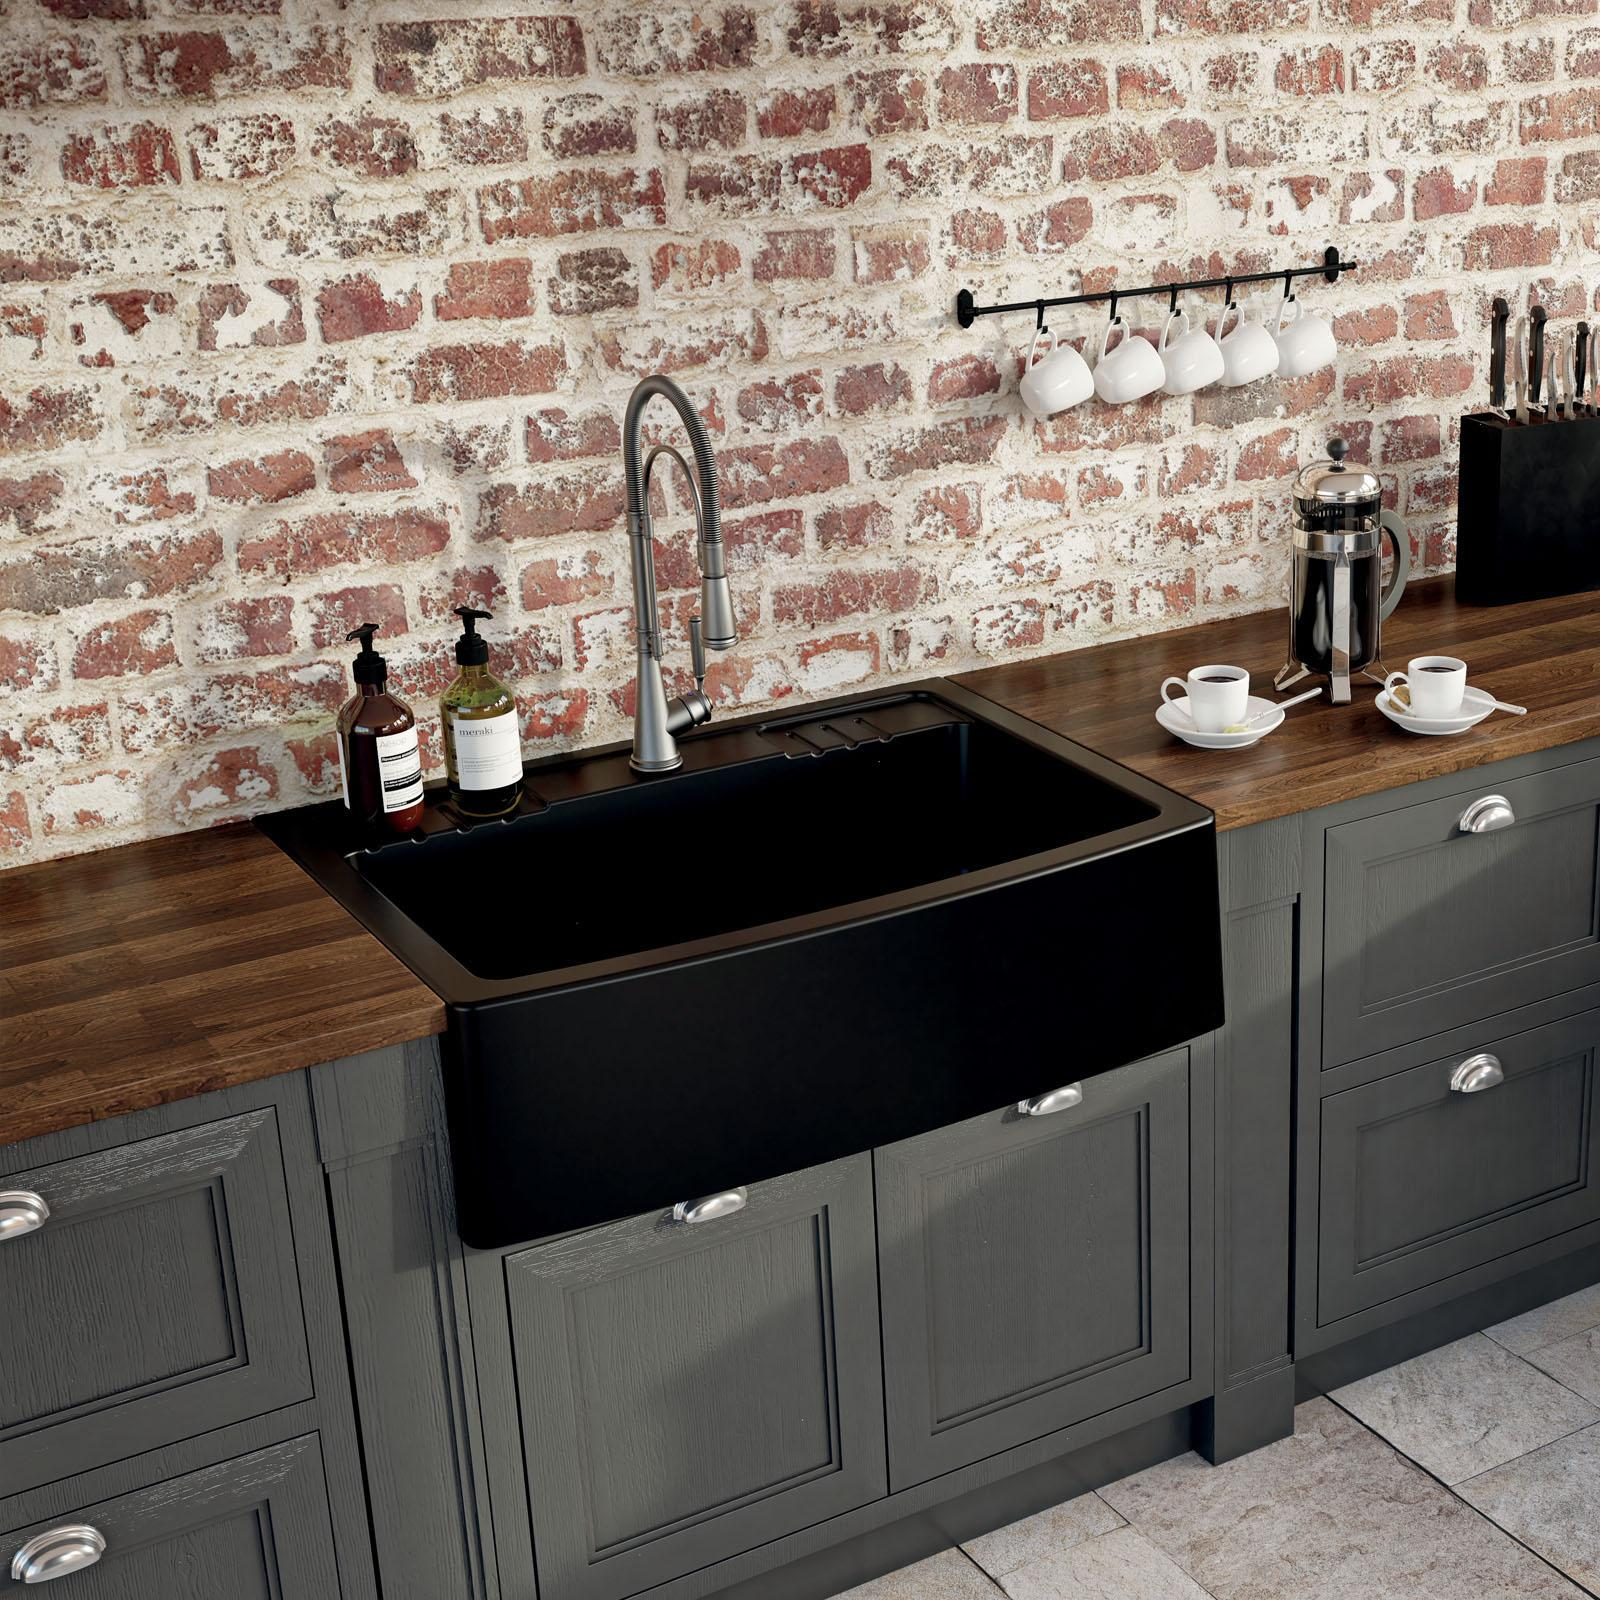 High-quality sink Clotaire IV granit black - one bowl - ambience